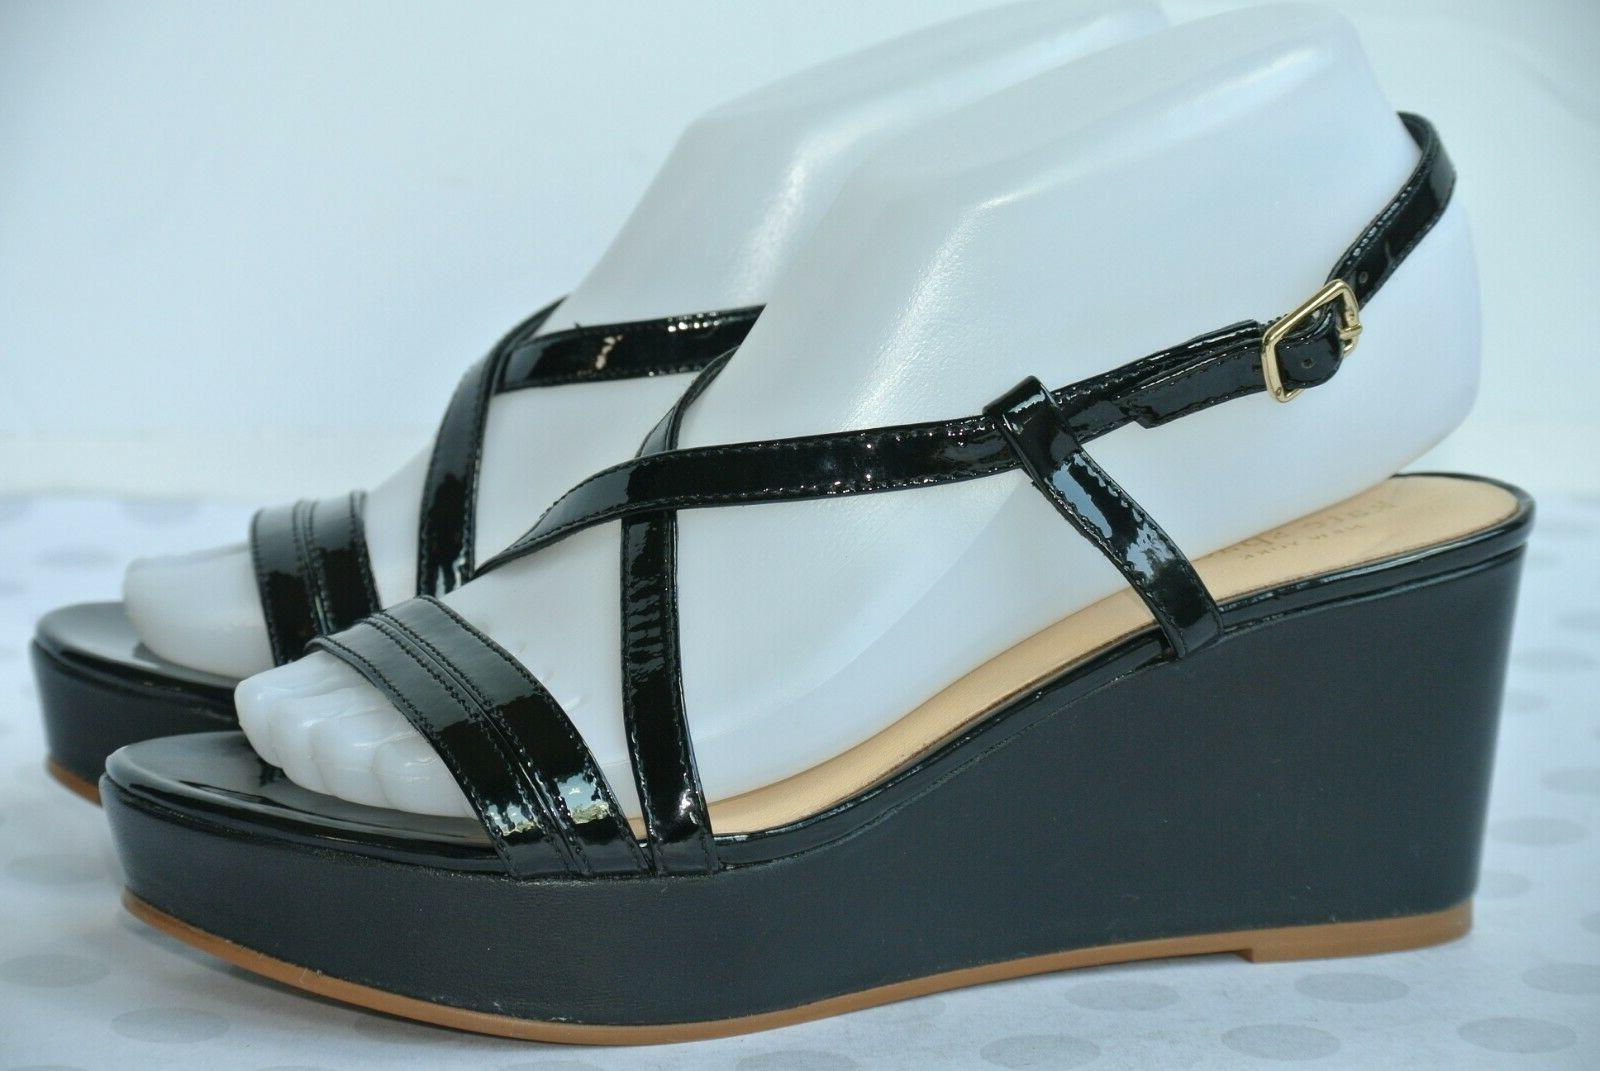 NEW York 7 Black Leather Platform Sandals Heels